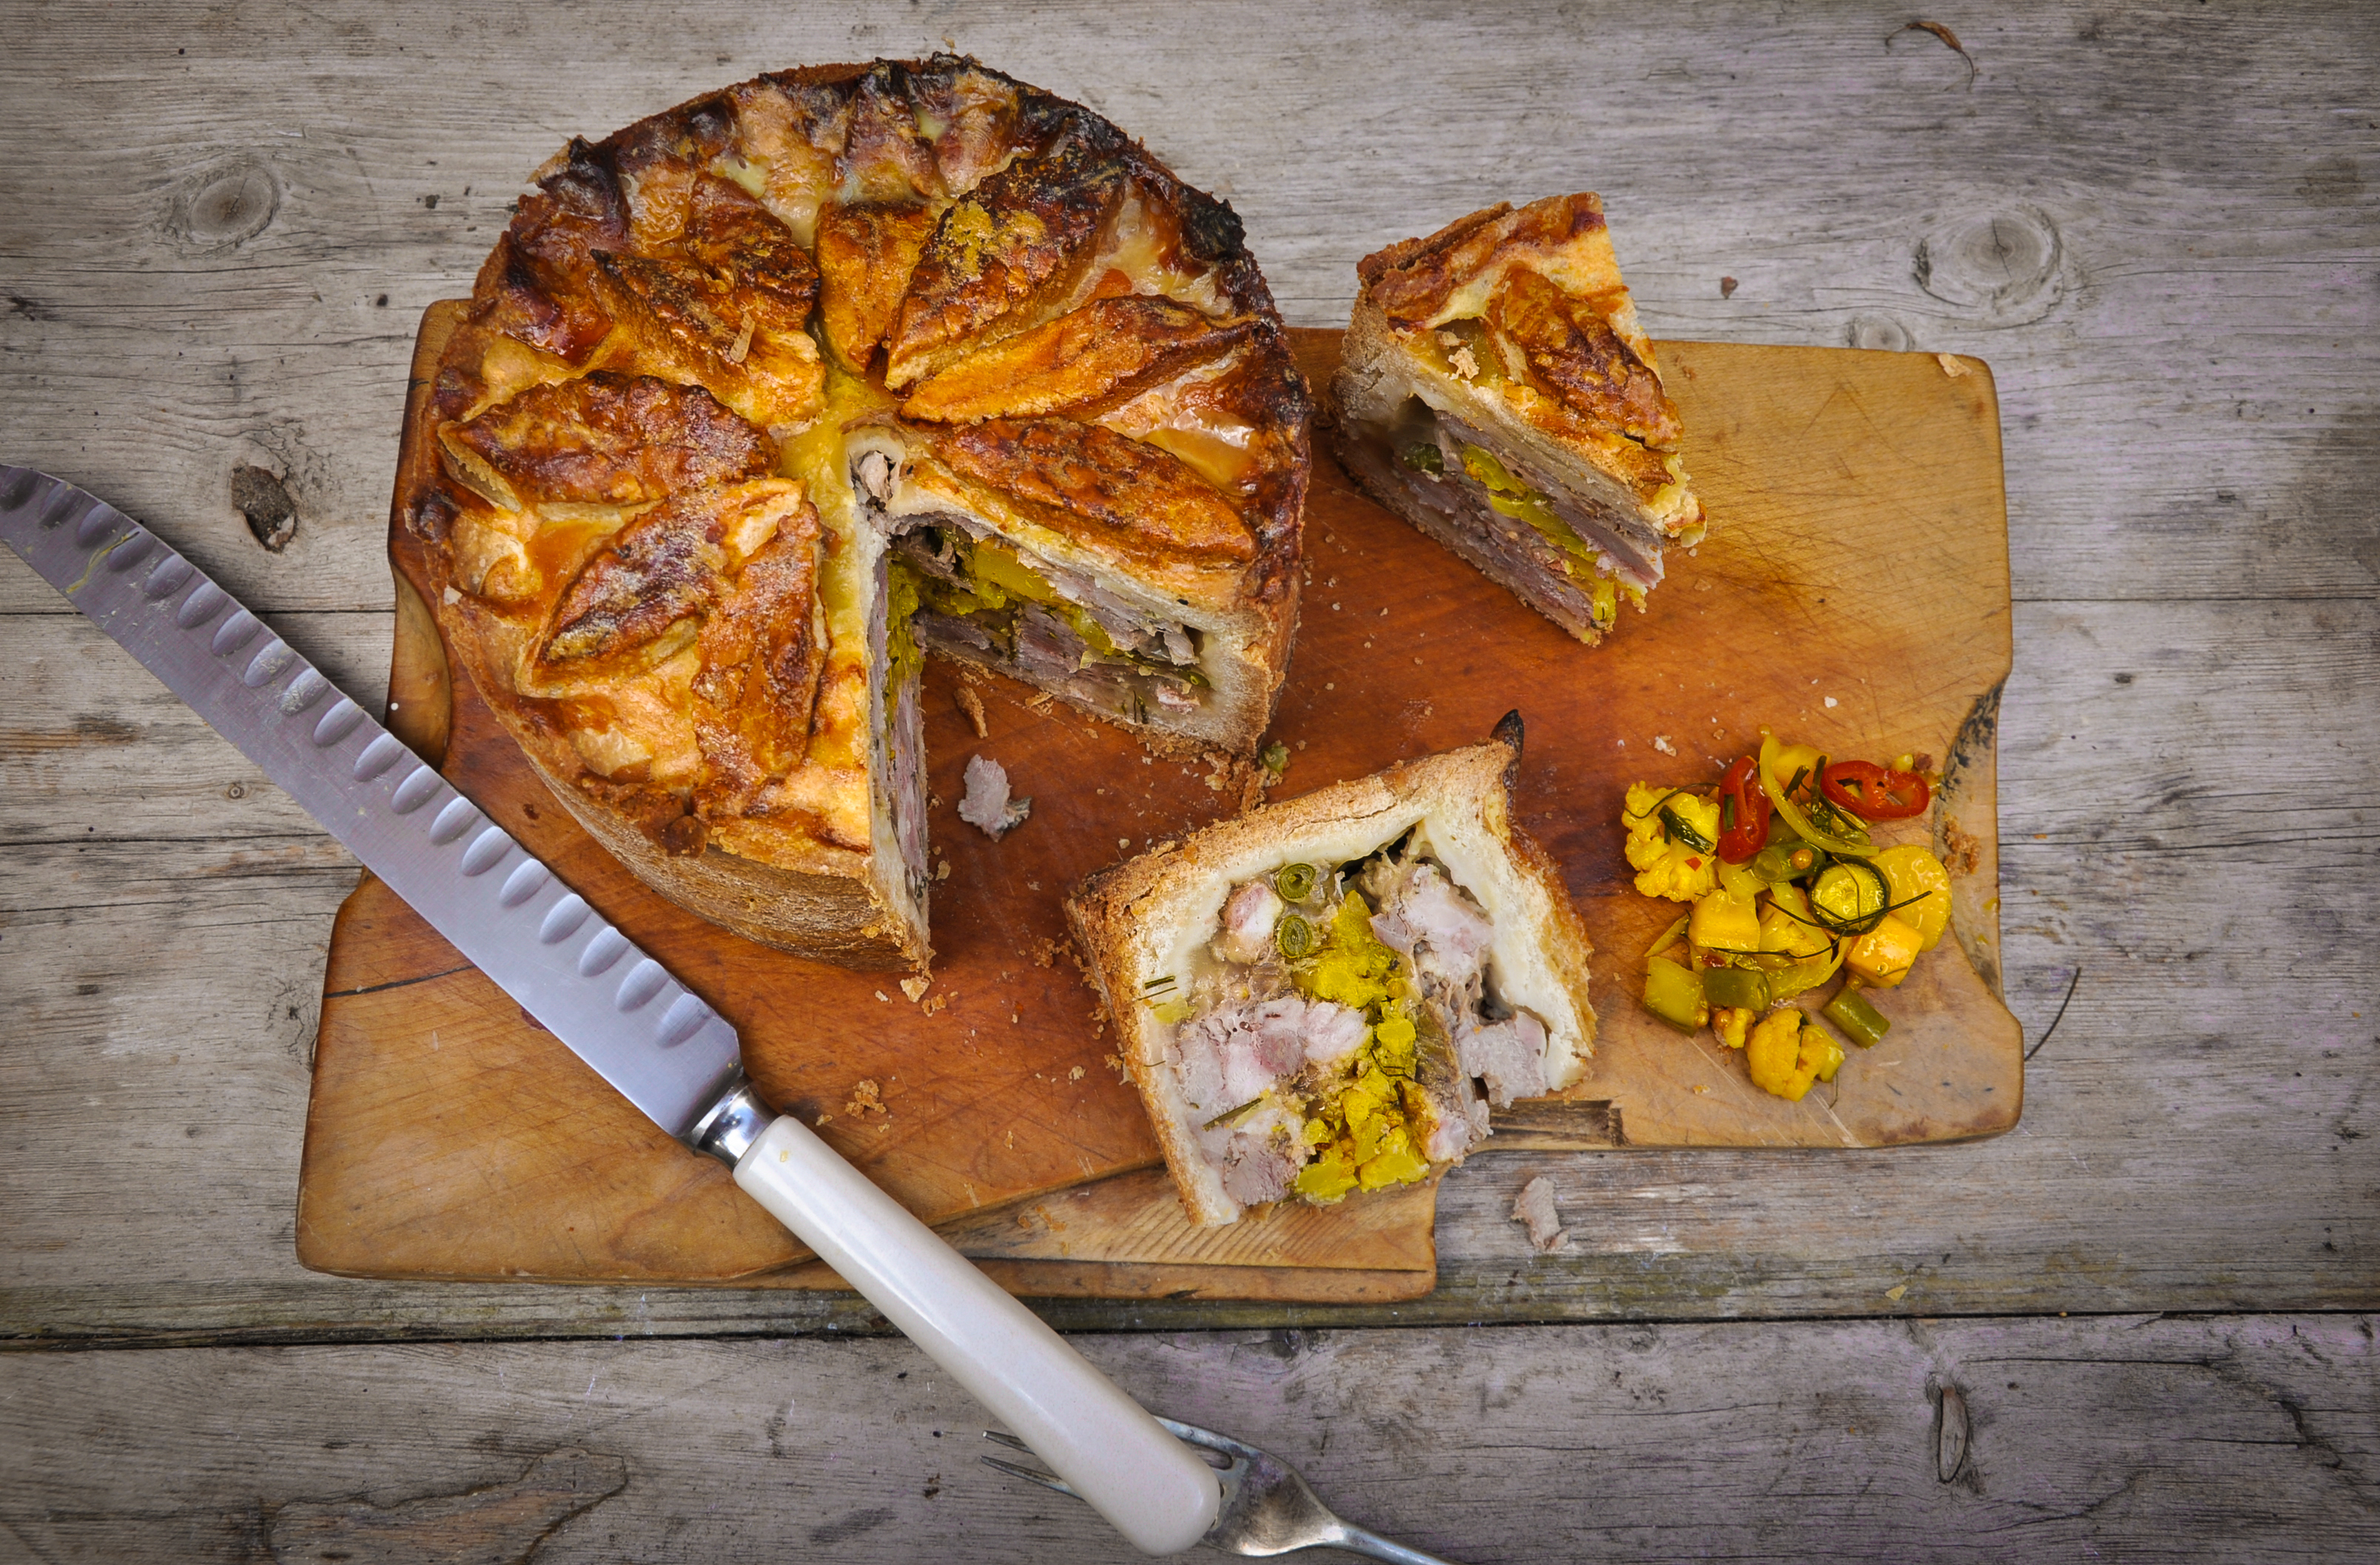 Great British Bake Off recipe: This pork and piccalilli pie is the stuff dreams are made of